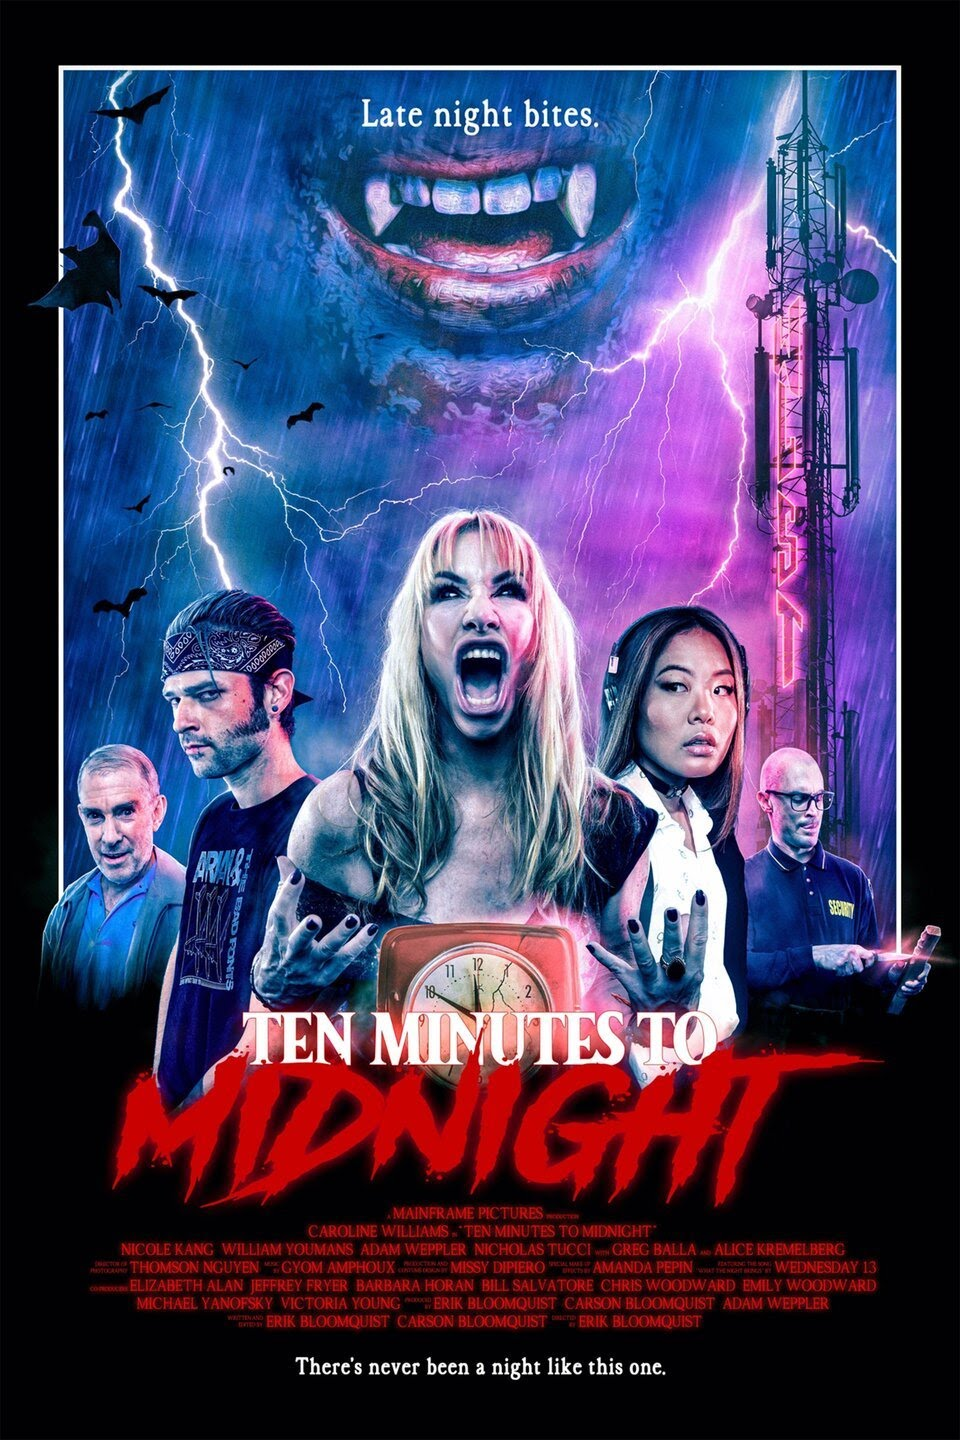 Ten Minutes to Midnight Review